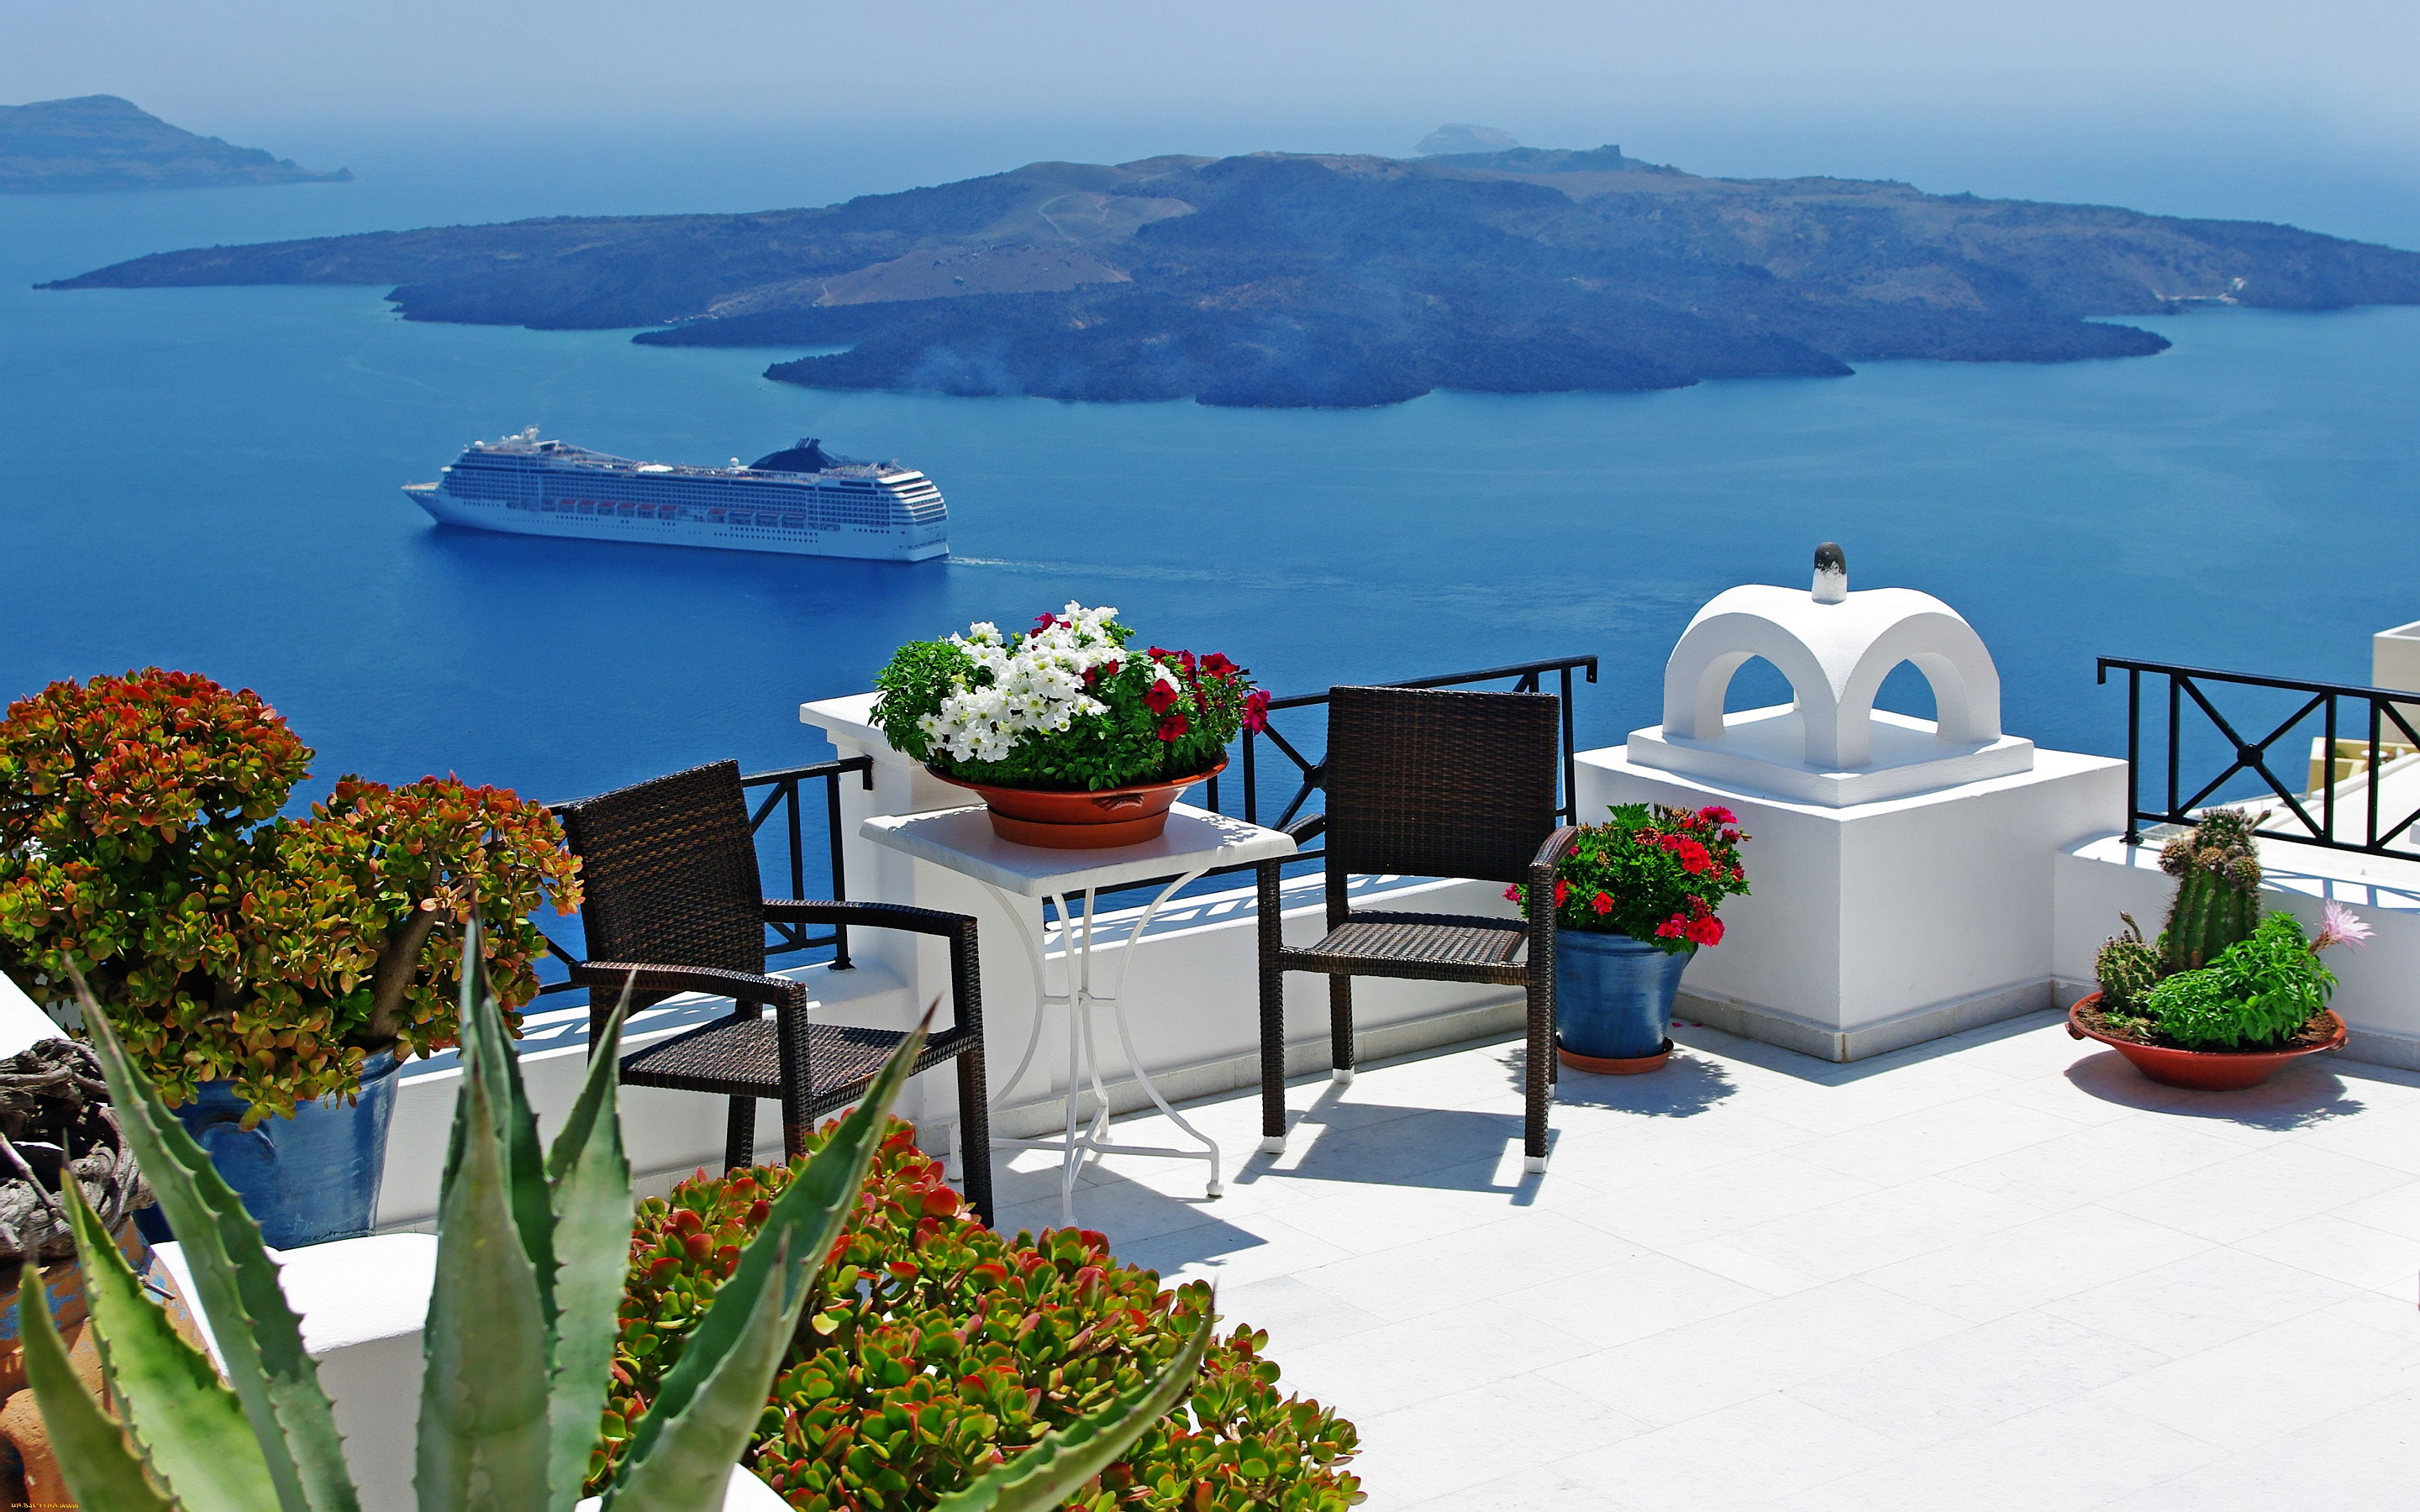 AD-Stunning-Photos-Of-Santorini-Greece-37